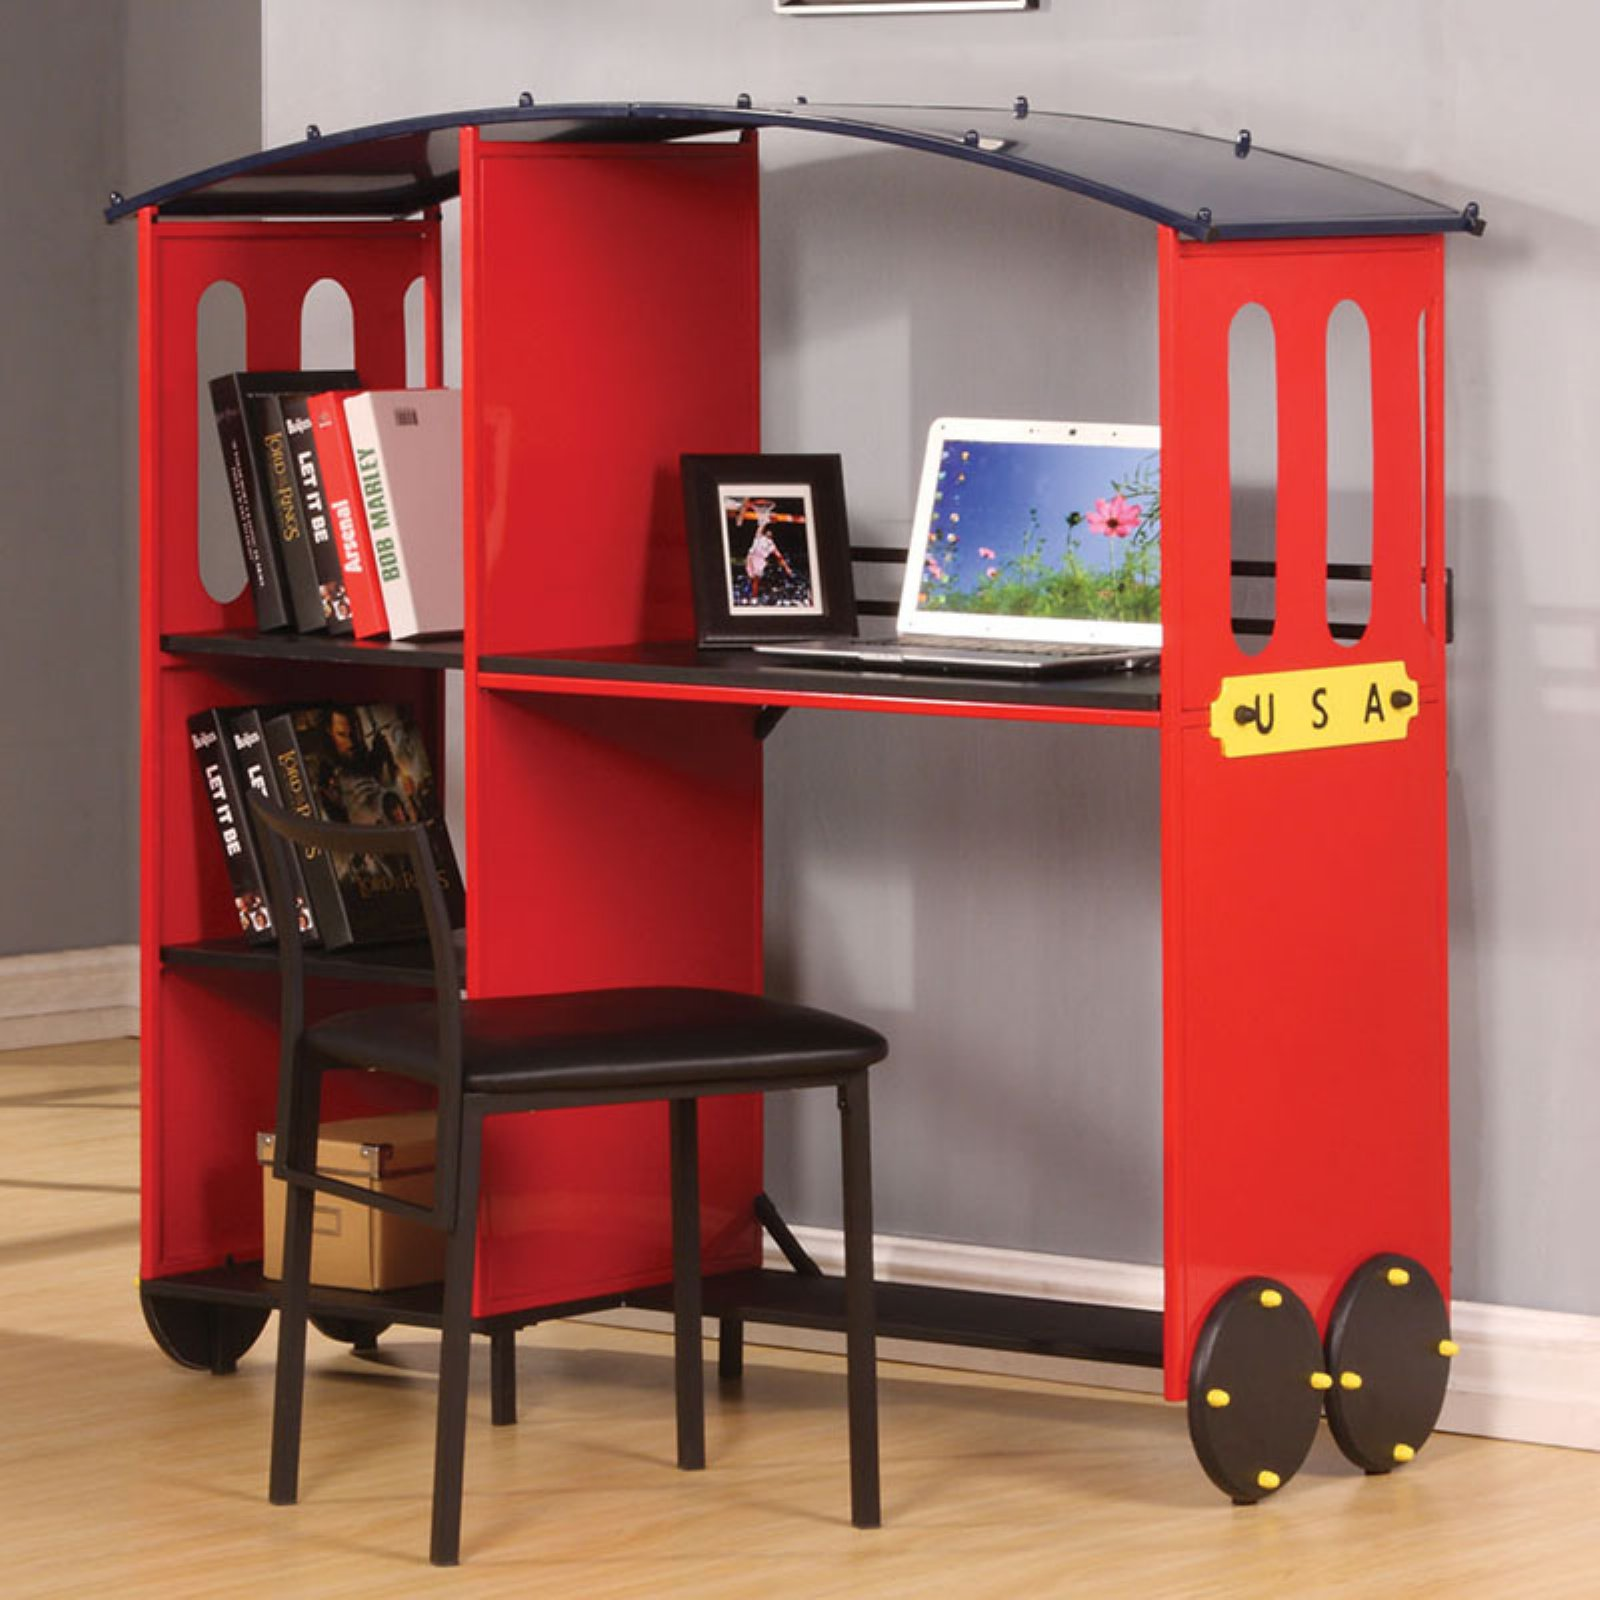 Acme Tobi Desk with Bookcase, Red and Black (Box 2 of 2)